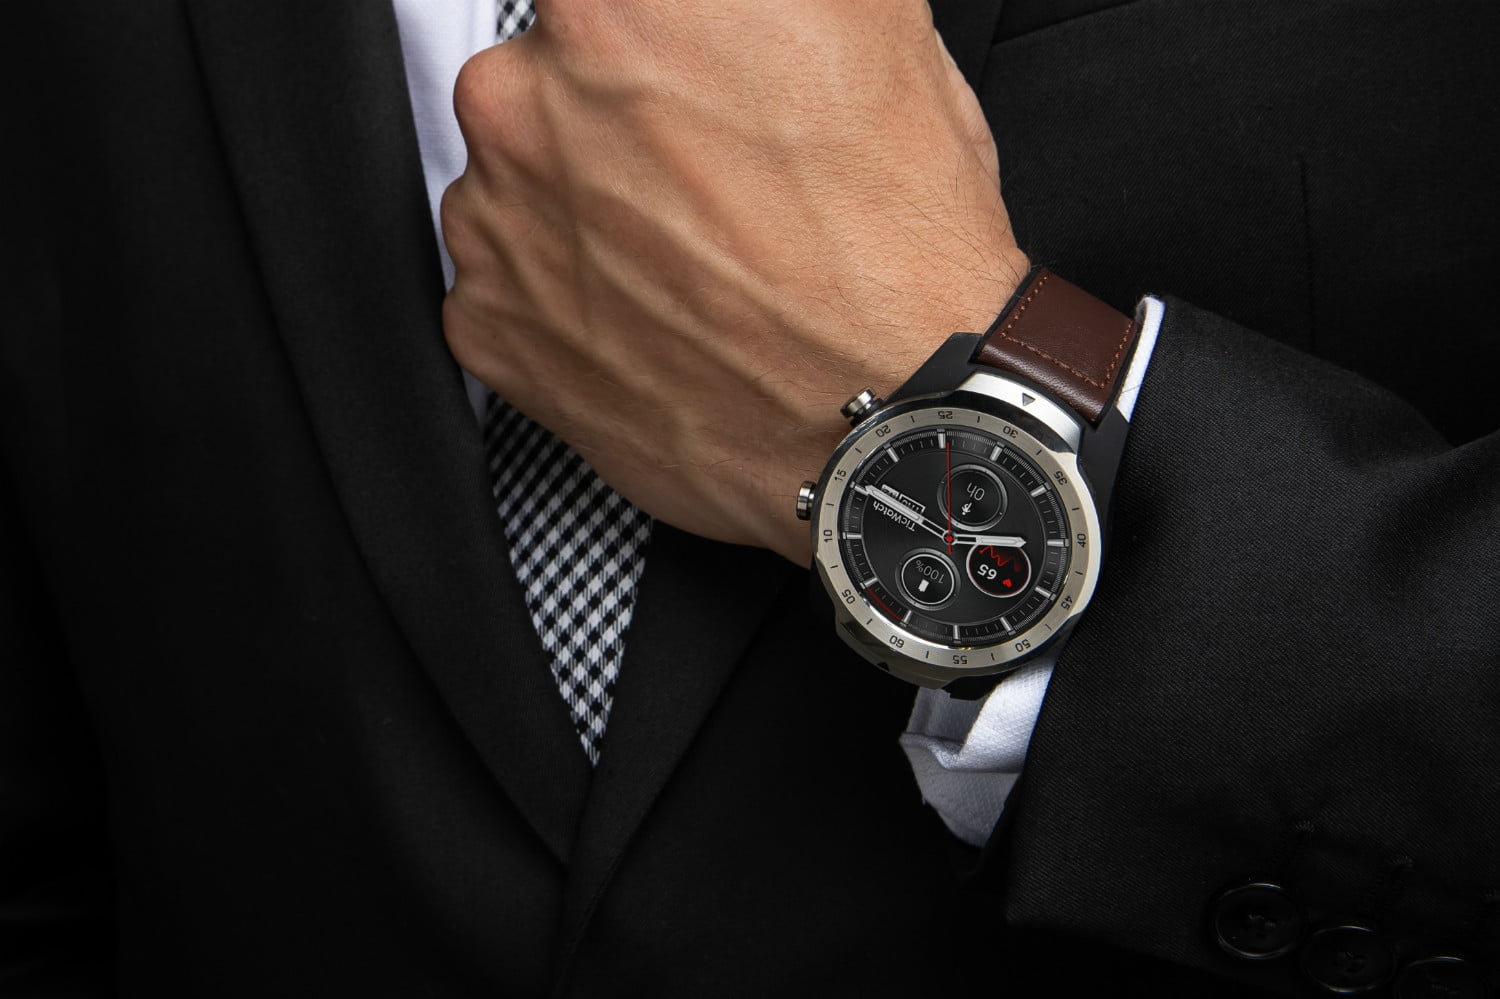 Ticwatch Pro Solves Smartwatch Battery Woes With Clever